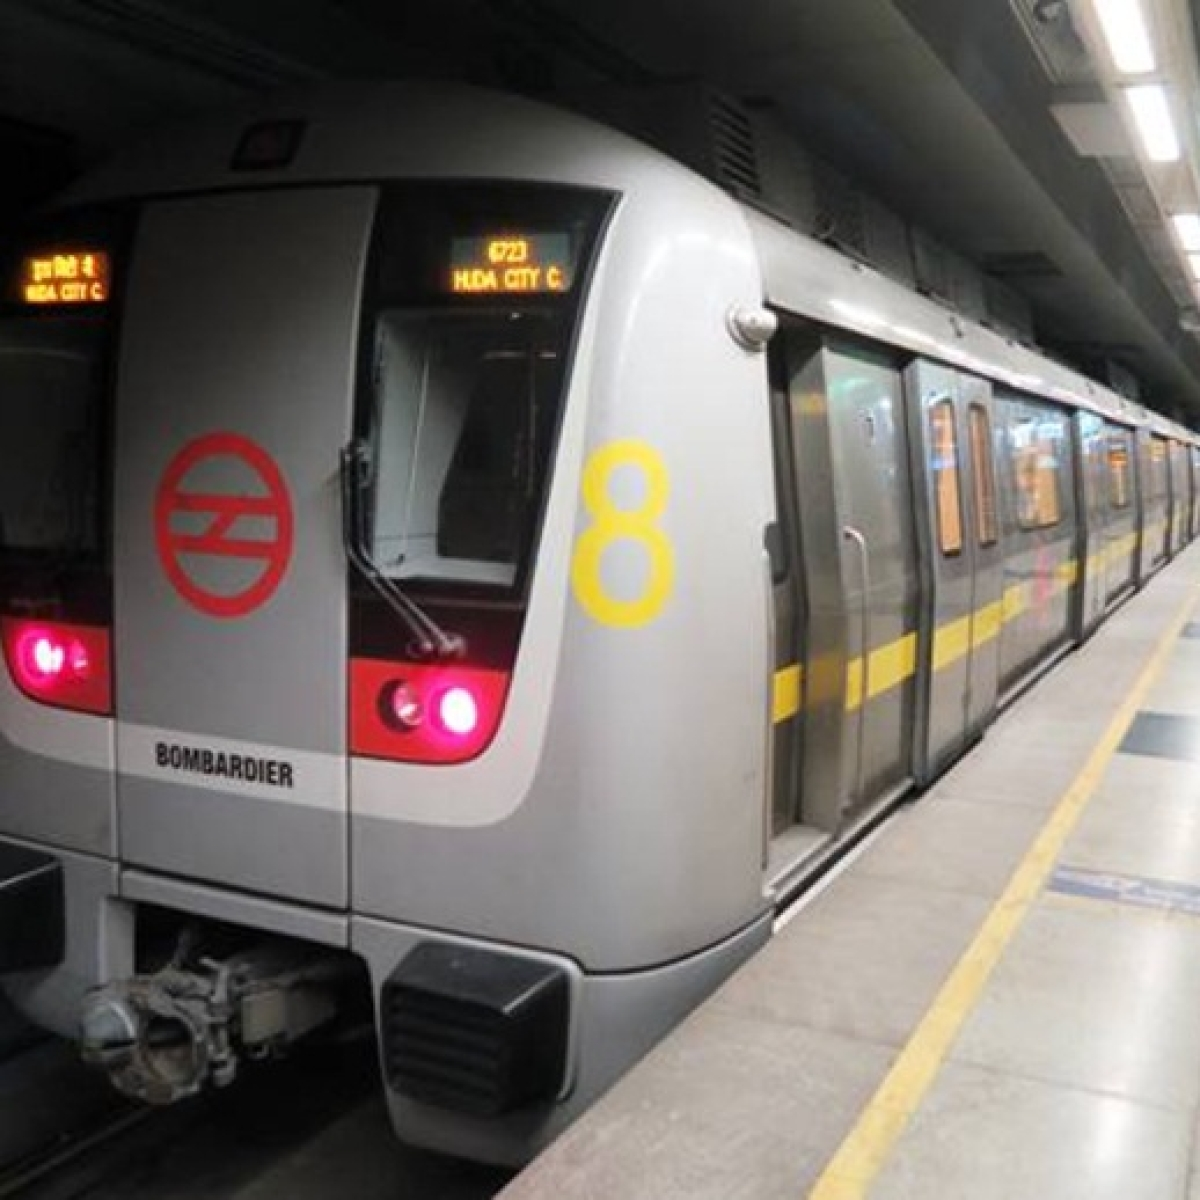 Delhi elections 2020: Delhi Metro services to begin at 4 am on polling day